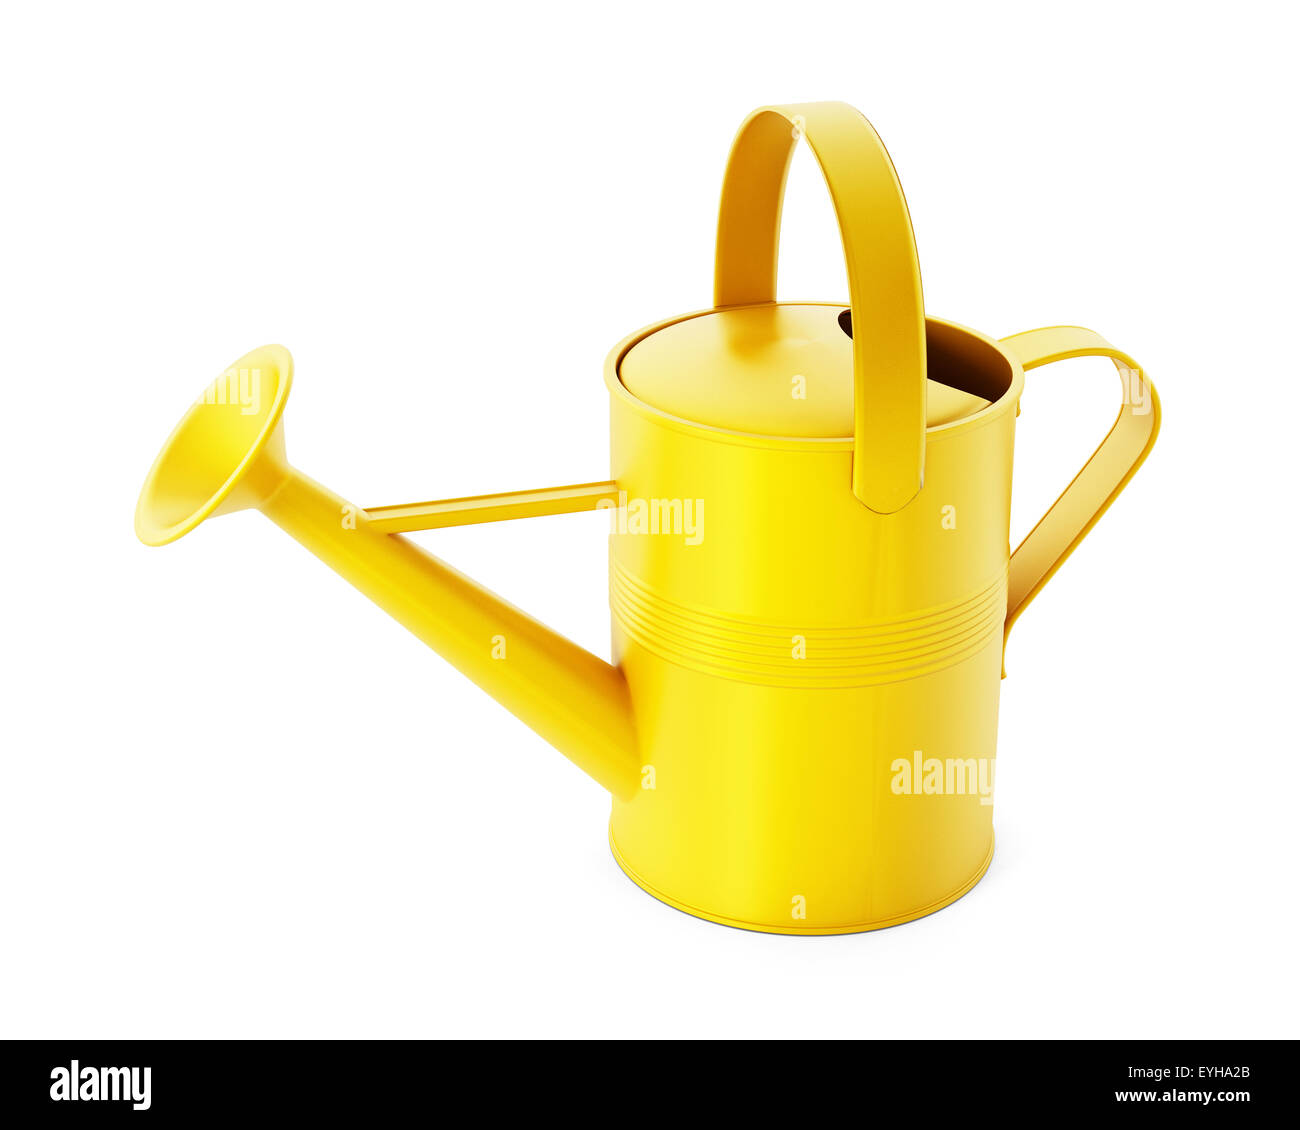 Yellowl watering can isolated on white background - Stock Image